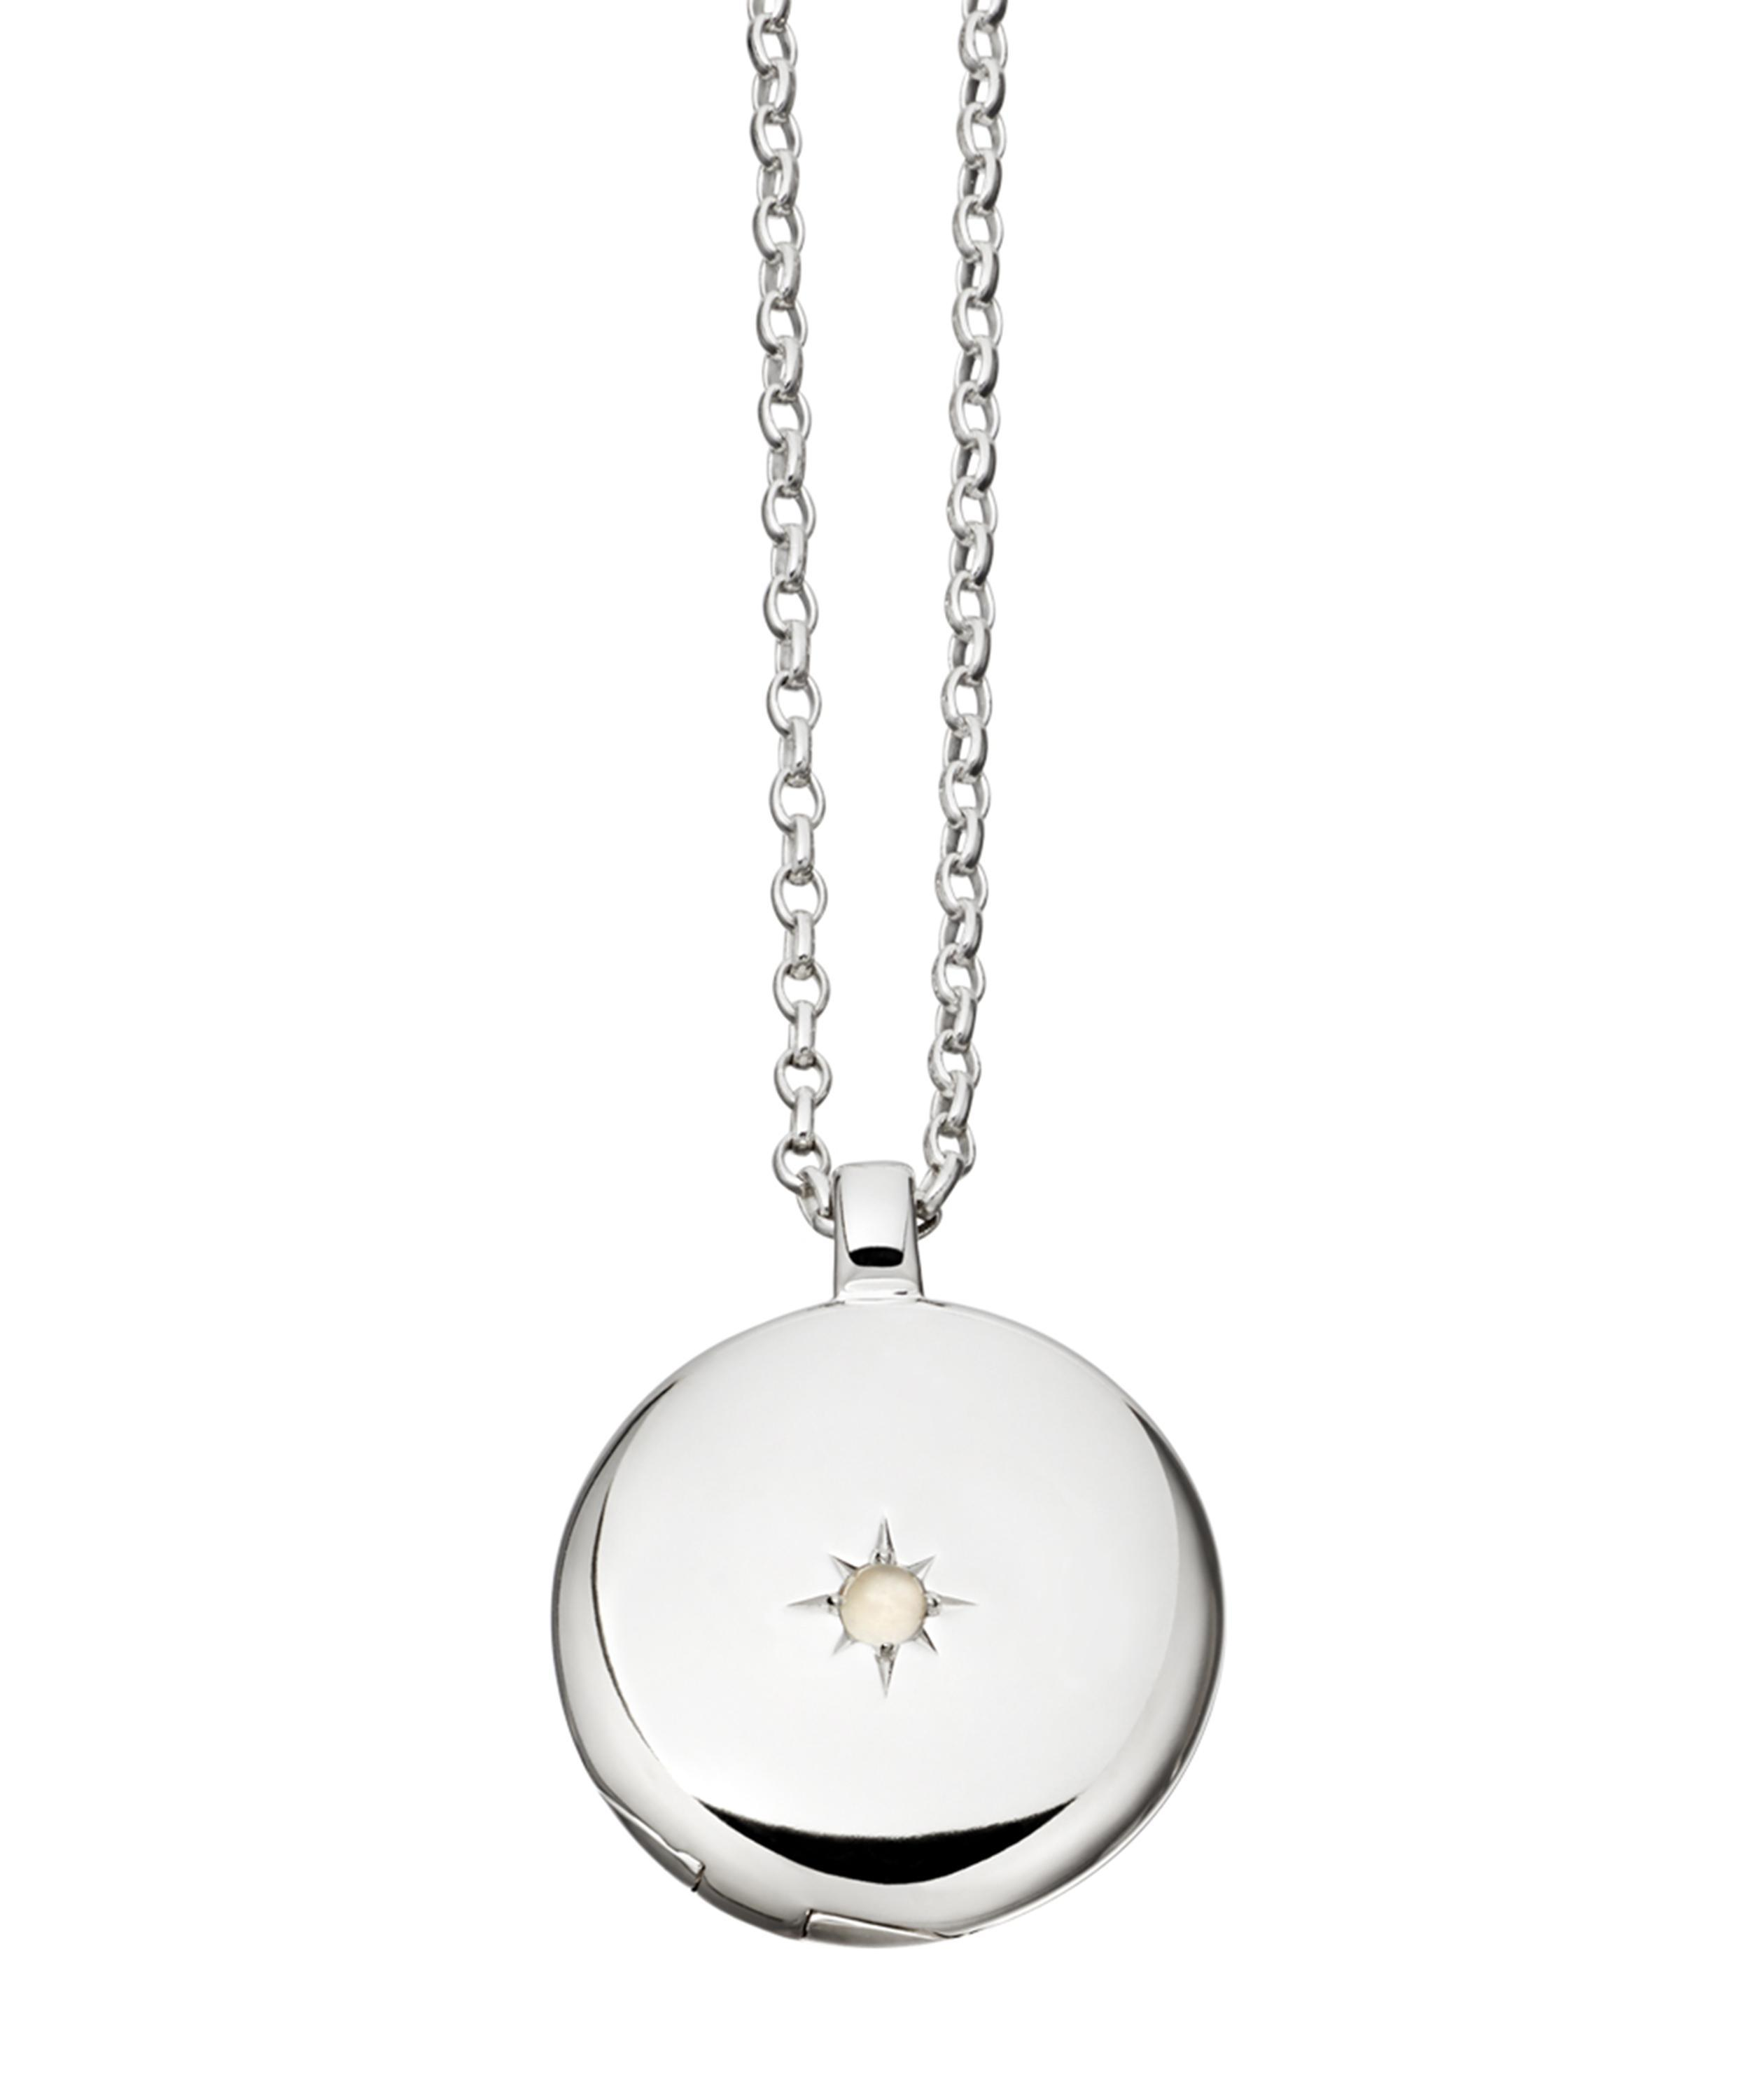 Astley Clarke medium Astley locket - Metallic VI4onar